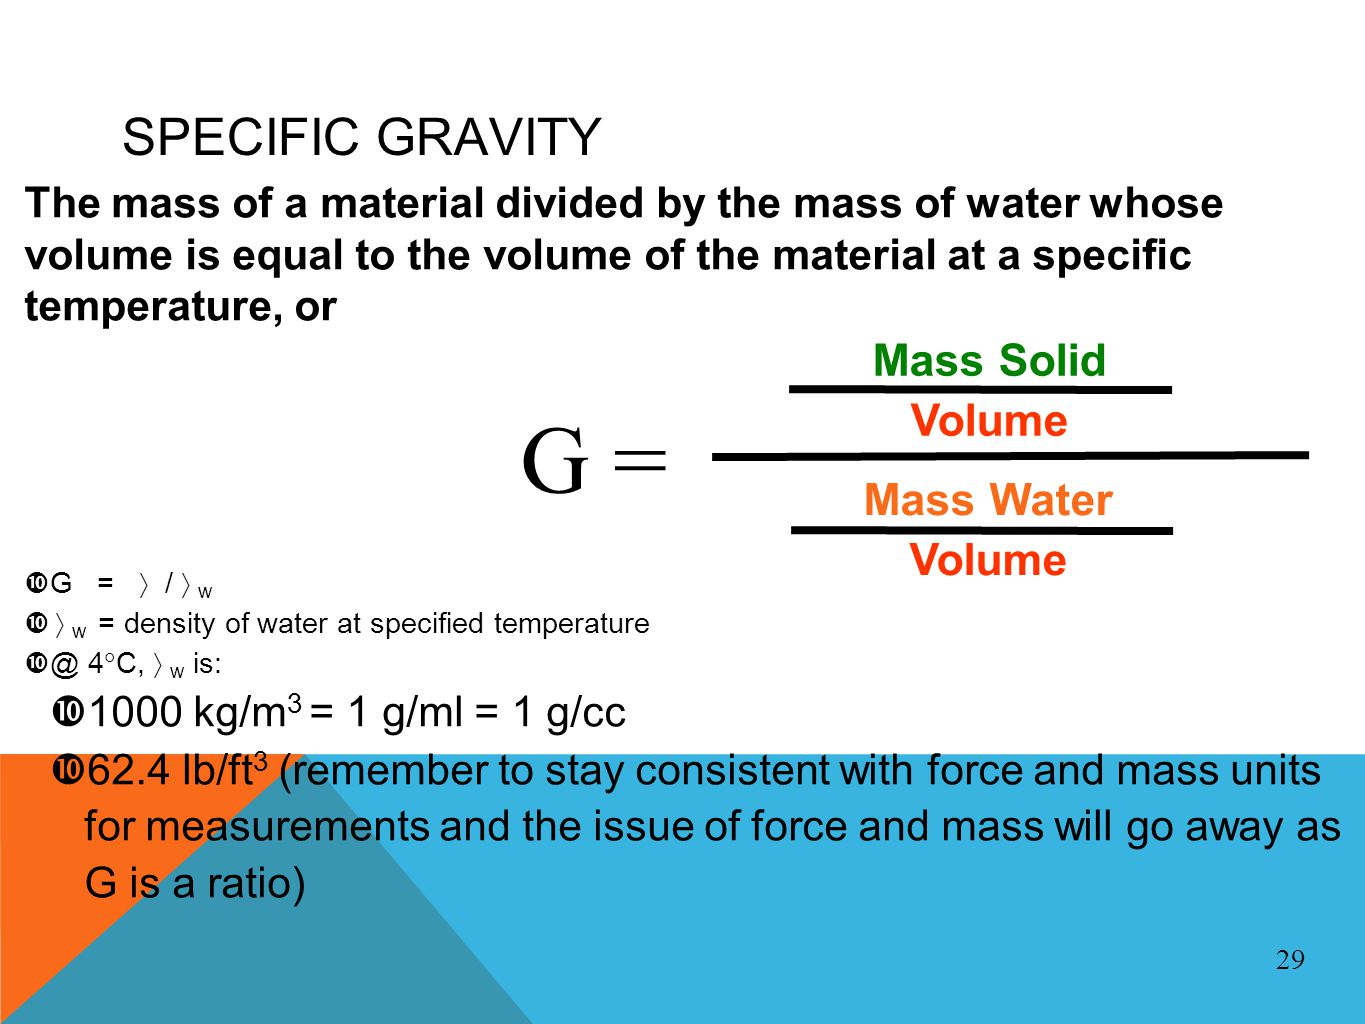 SPECIFIC GRAVITY The mass of a material divided by the mass of water whose volume is equal to the volume of the material at a specific temperature, or G = / w w = density of water at specified temperature @ 4 C, w is: 1000 kg/m 3 = 1 g/ml = 1 g/cc 62.4 lb/ft 3 (remember to stay consistent with force and mass units for measurements and the issue of force and mass will go away as G is a ratio) 29 Mass Solid Volume Mass Water Volume G =